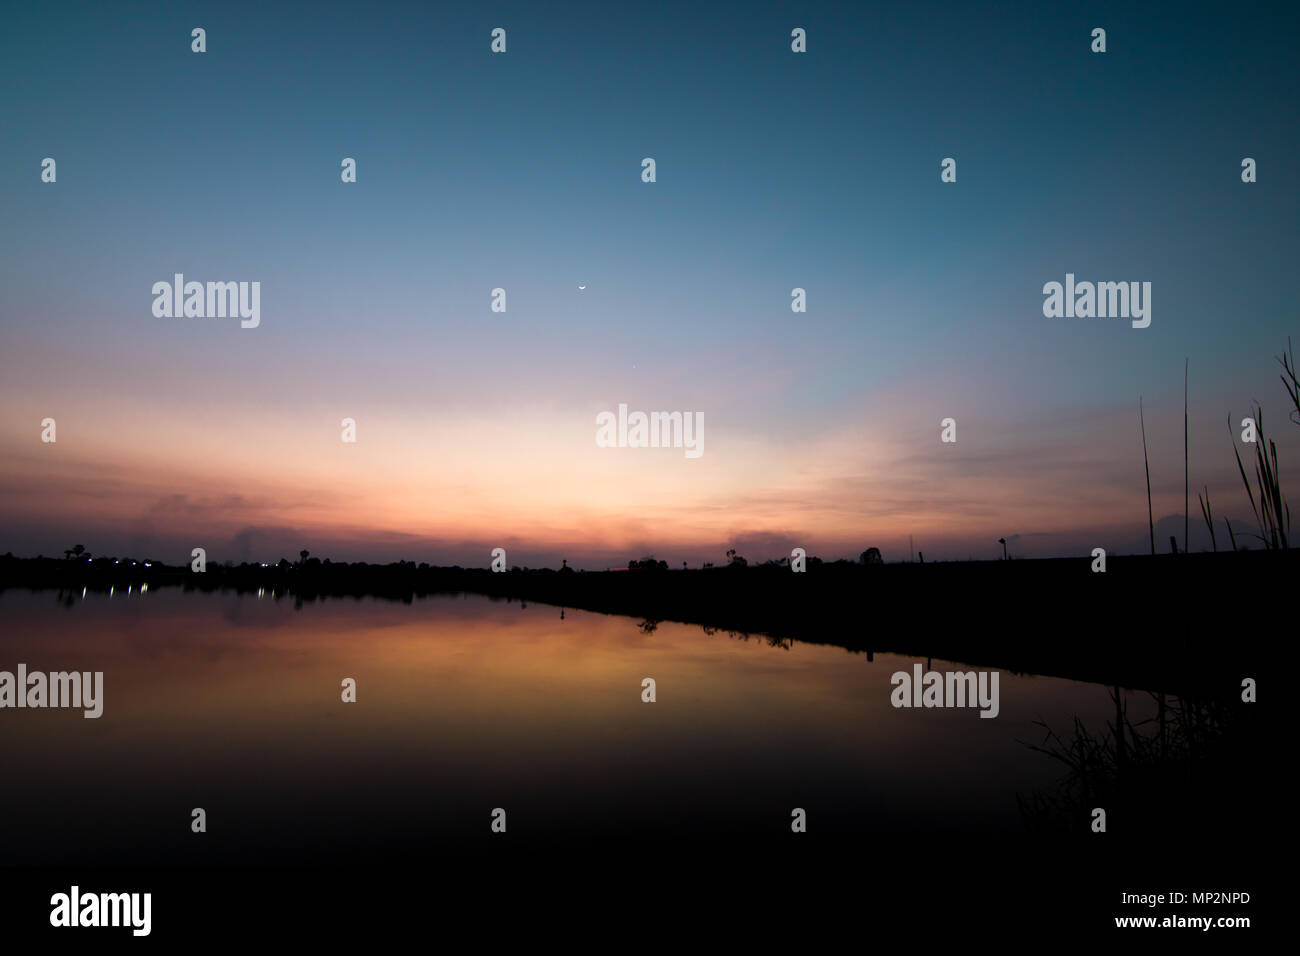 blue sky and white clound in twilight - Stock Image